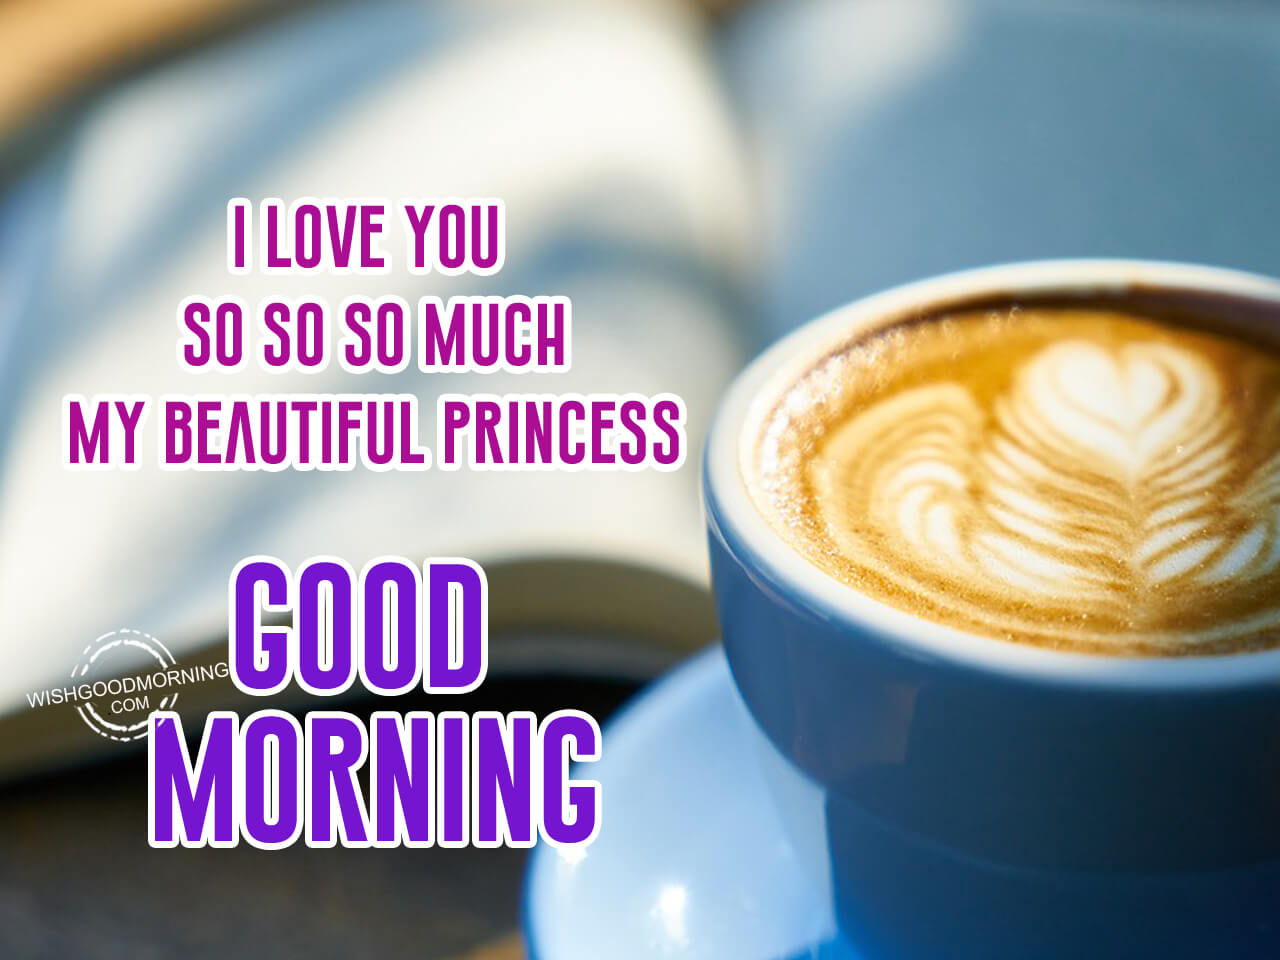 Good Morning I Love You: Good Morning Wishes For Daughter